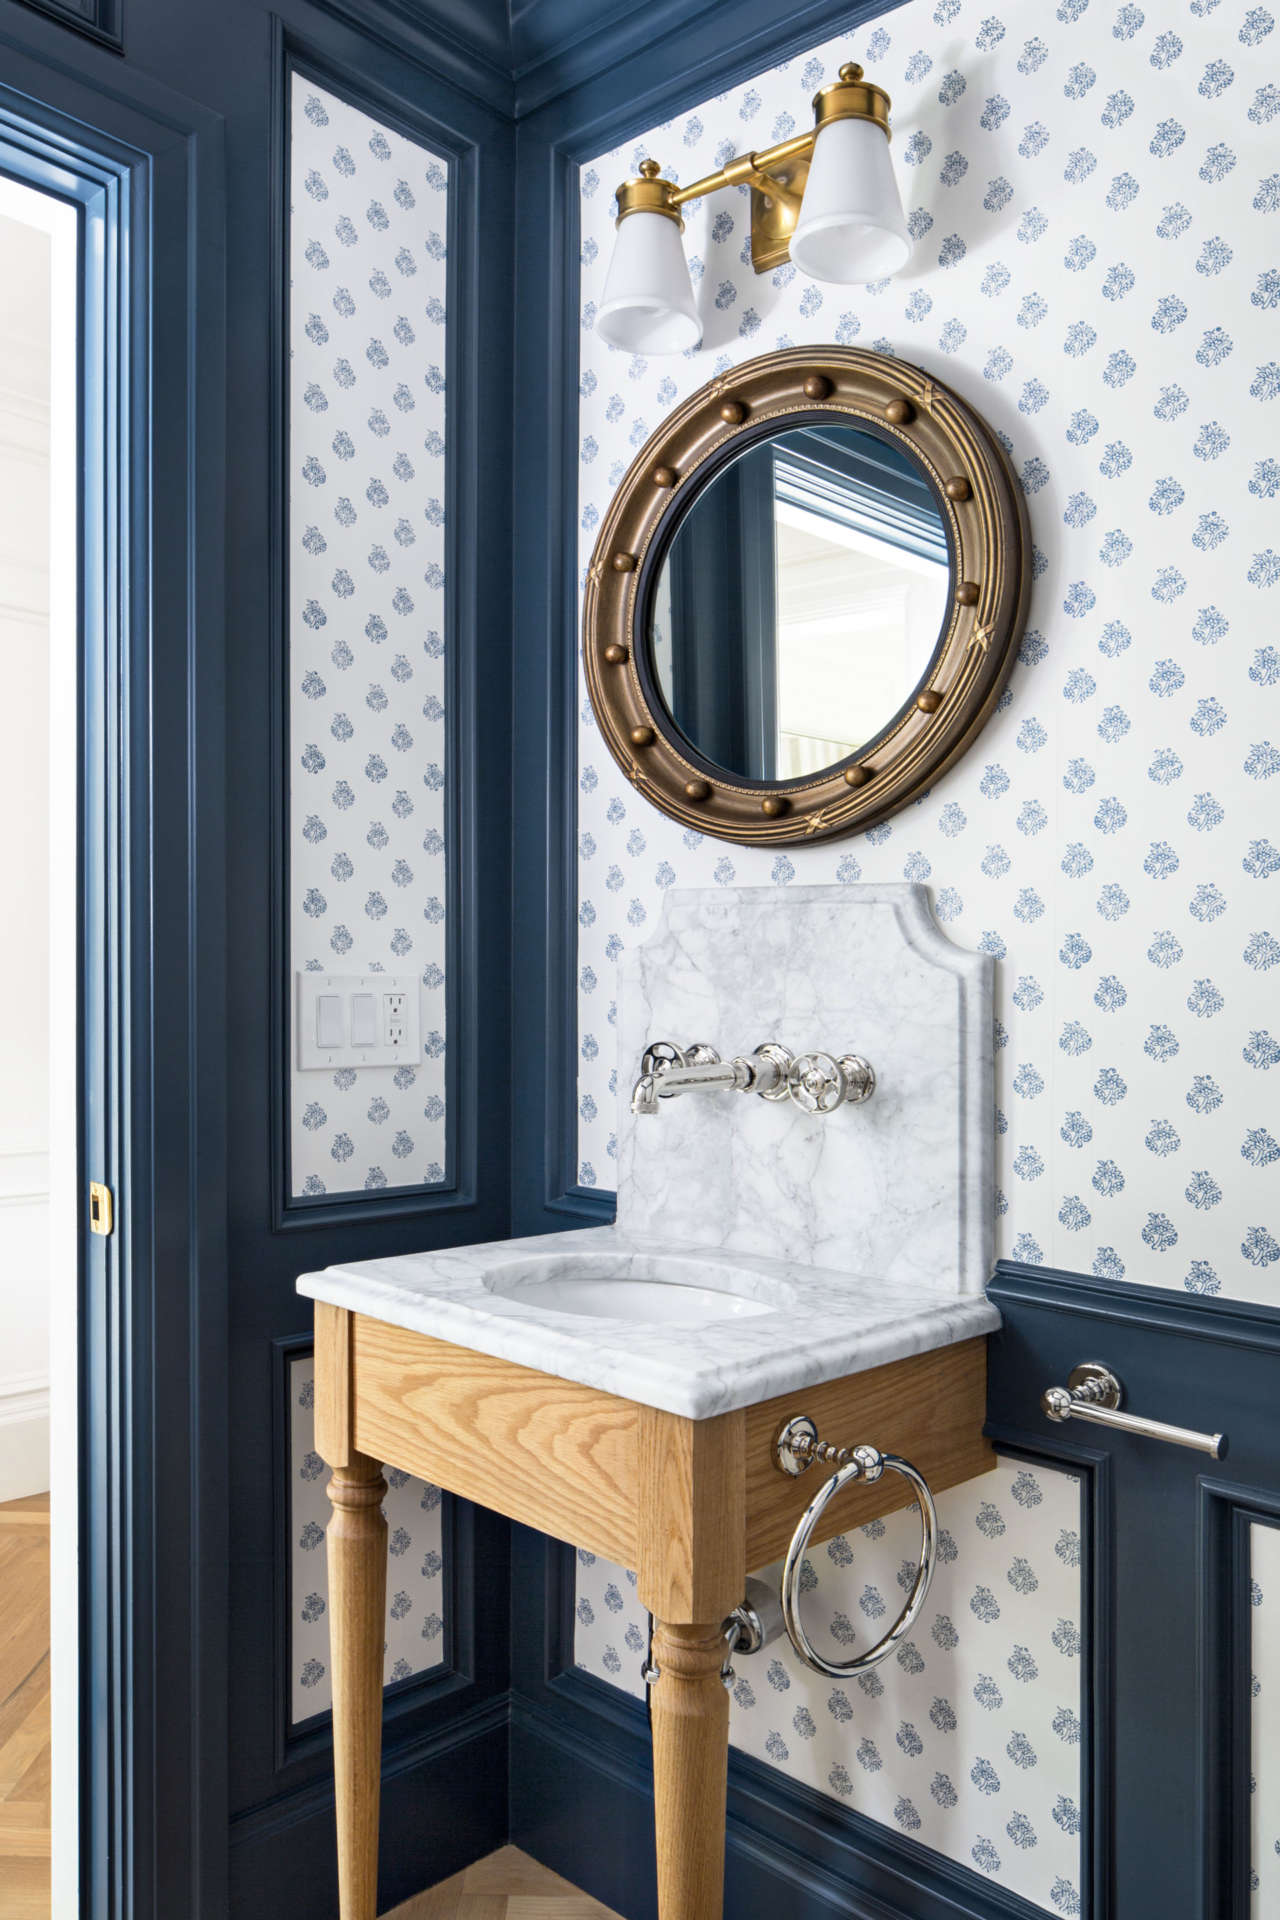 Traditional powder room with wood console sink with marble top,  blue and white wallpaper and navy blue trim. The Fox Group. Come explore these timeless design ideas...hello lovely indeed.#powderroom #traditional #thefoxgroup